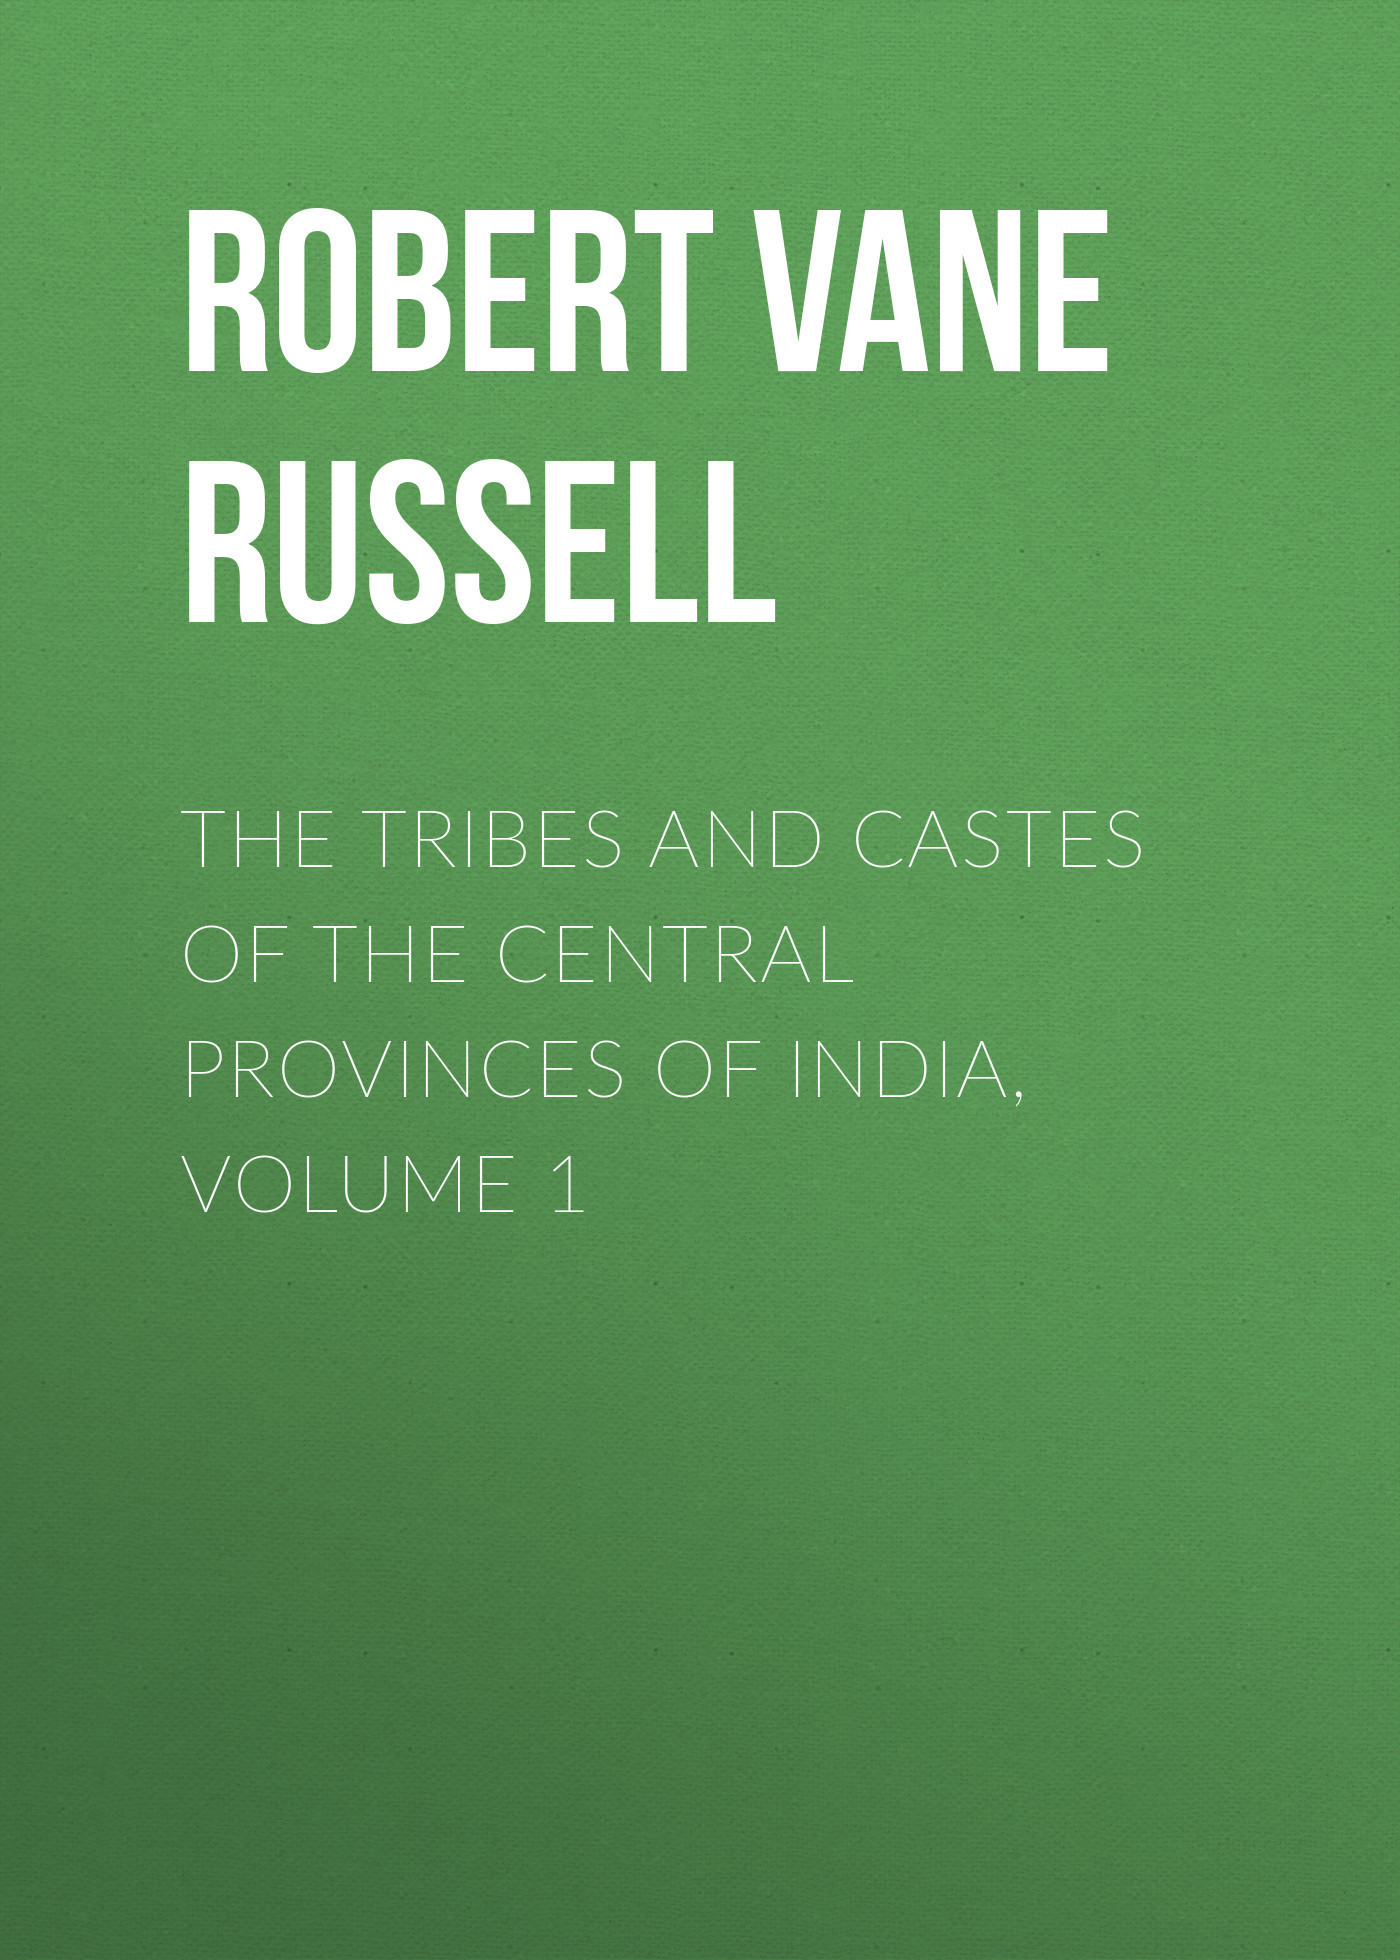 Robert Vane Russell The Tribes and Castes of the Central Provinces of India, Volume 1 master of war volume 1